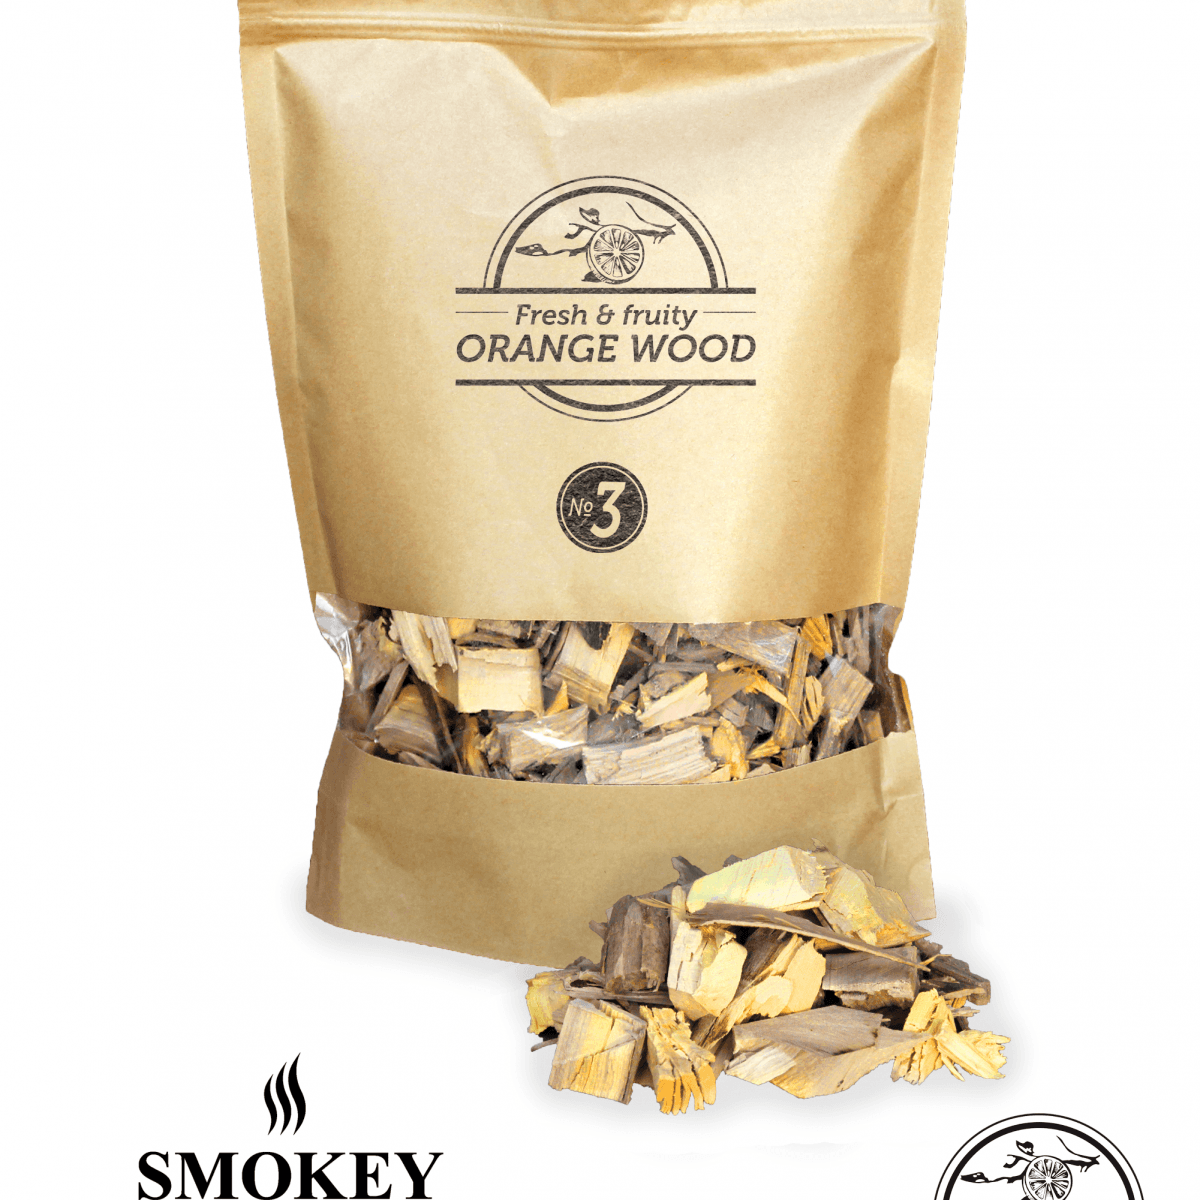 Smokey Olive Wood snippers Nº 3